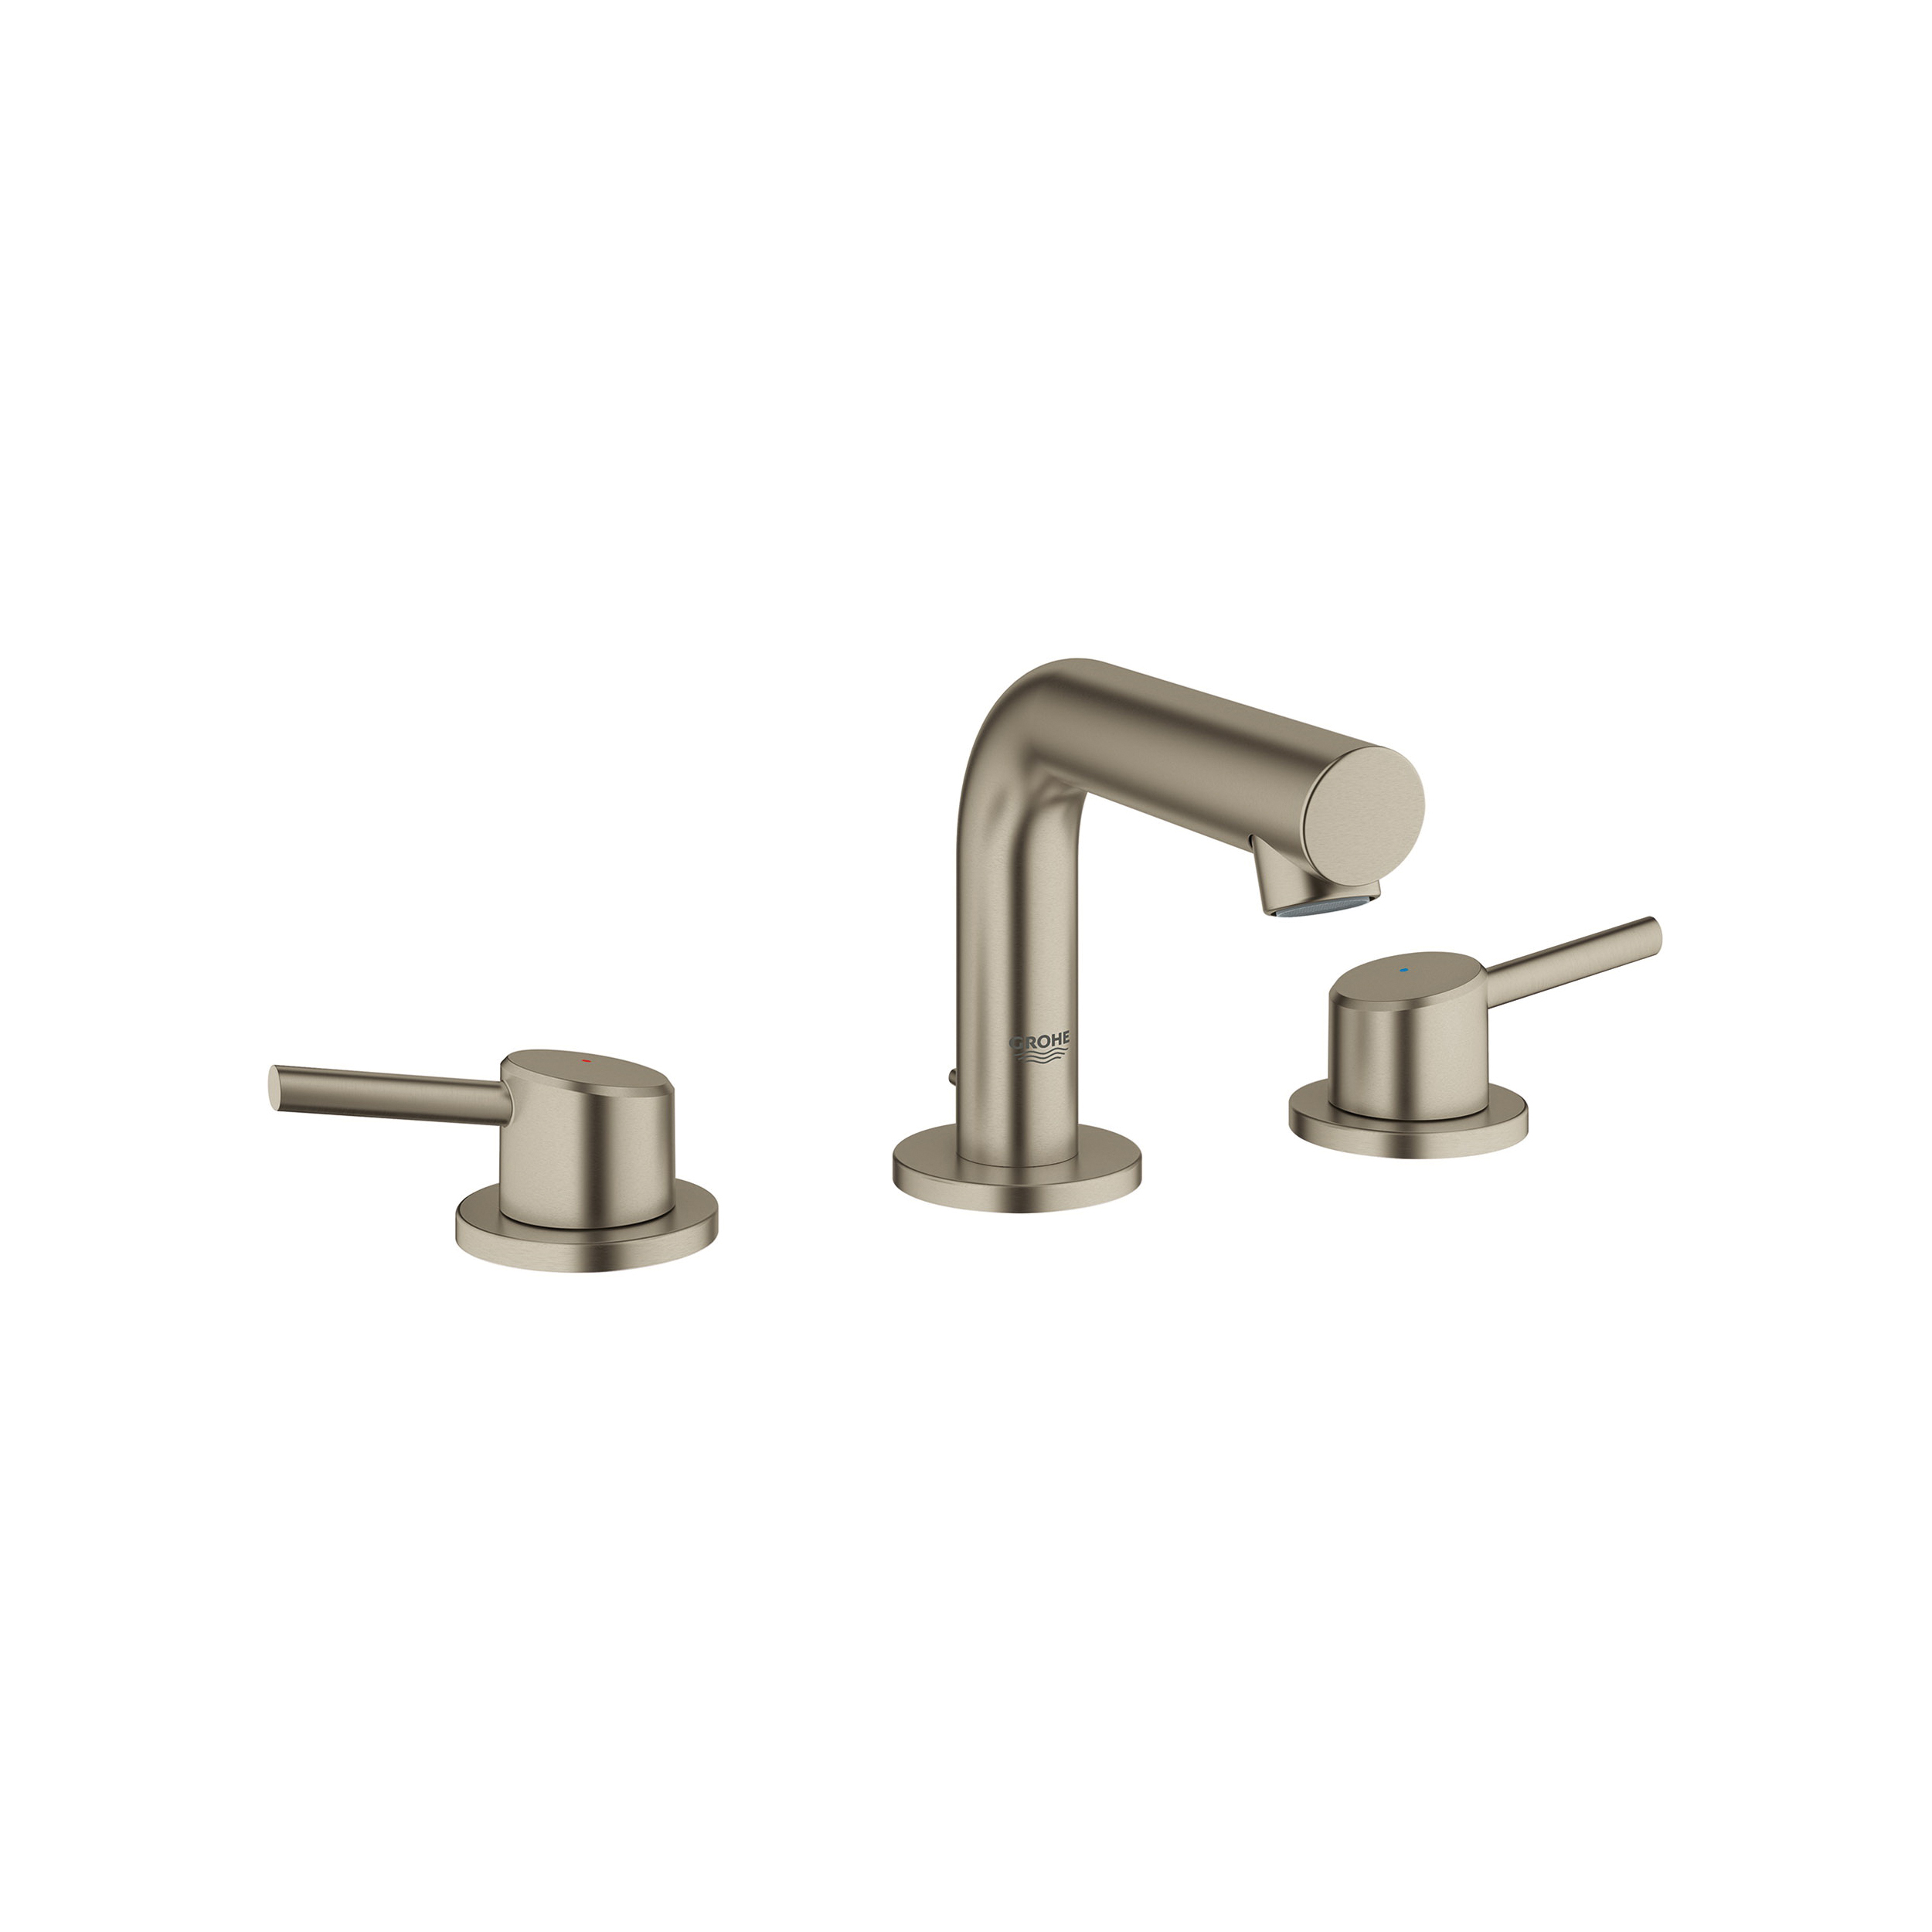 GROHE 20572EN1 Concetto Widespread Bathroom Faucet, 2.2 gpm, 3-3/8 in H Spout, 8 in Center, Brushed Nickel, 2 Handles, Pop-Up Drain, Import